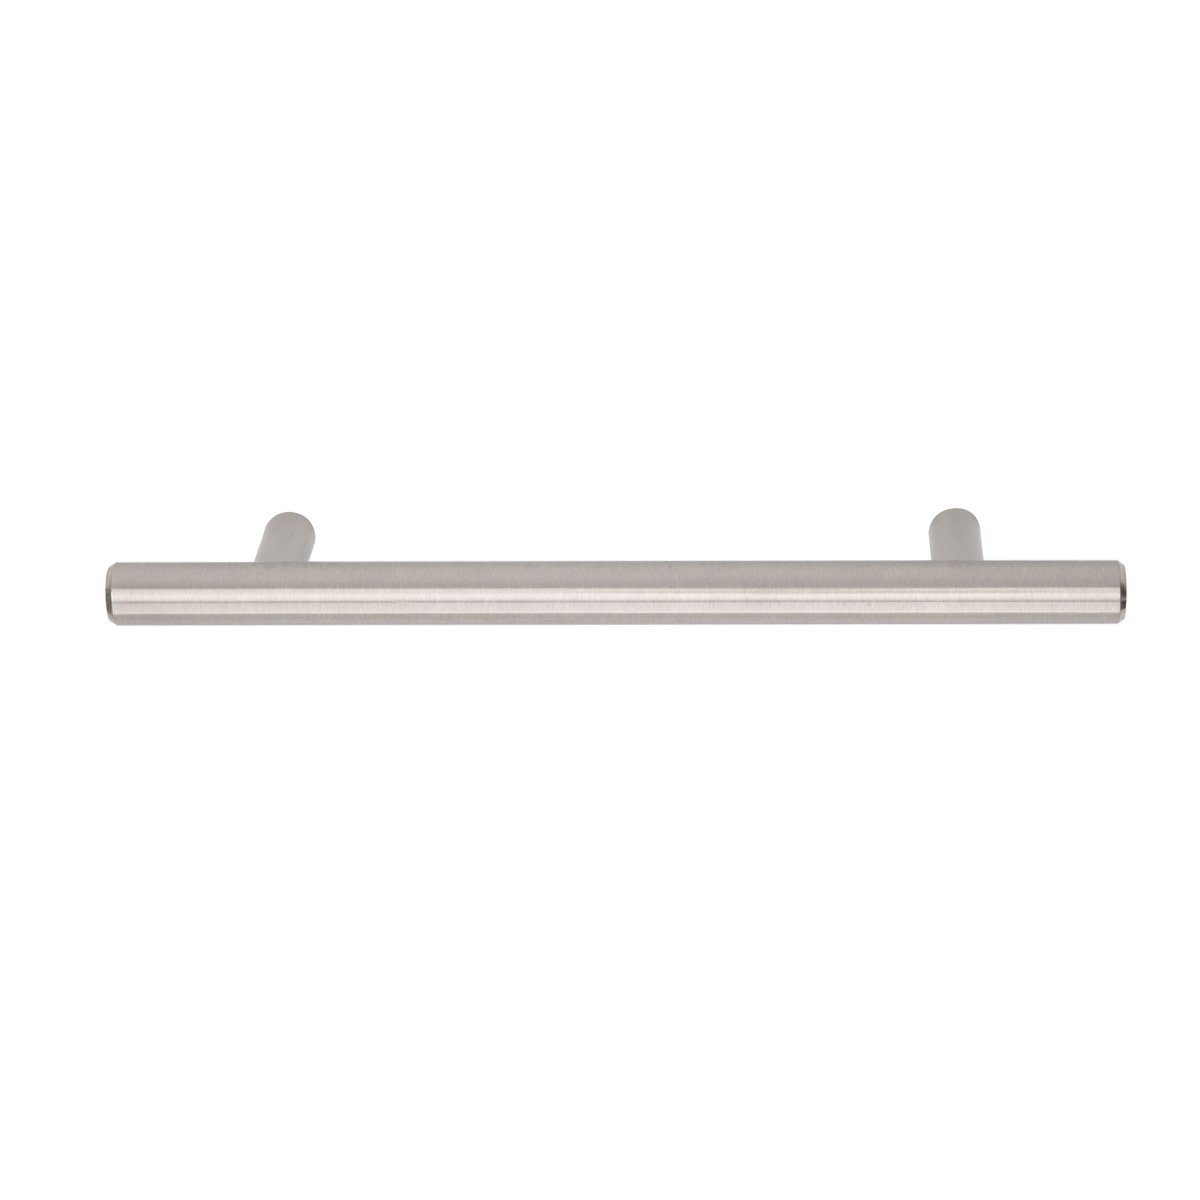 AmazonBasics Euro Bar Kitchen Cabinet Handle 1/2 Inch Diameter, 7.38 Inch Length, 5 Inch Hole Center, Satin Nickel, 25-Pack by AmazonBasics (Image #2)